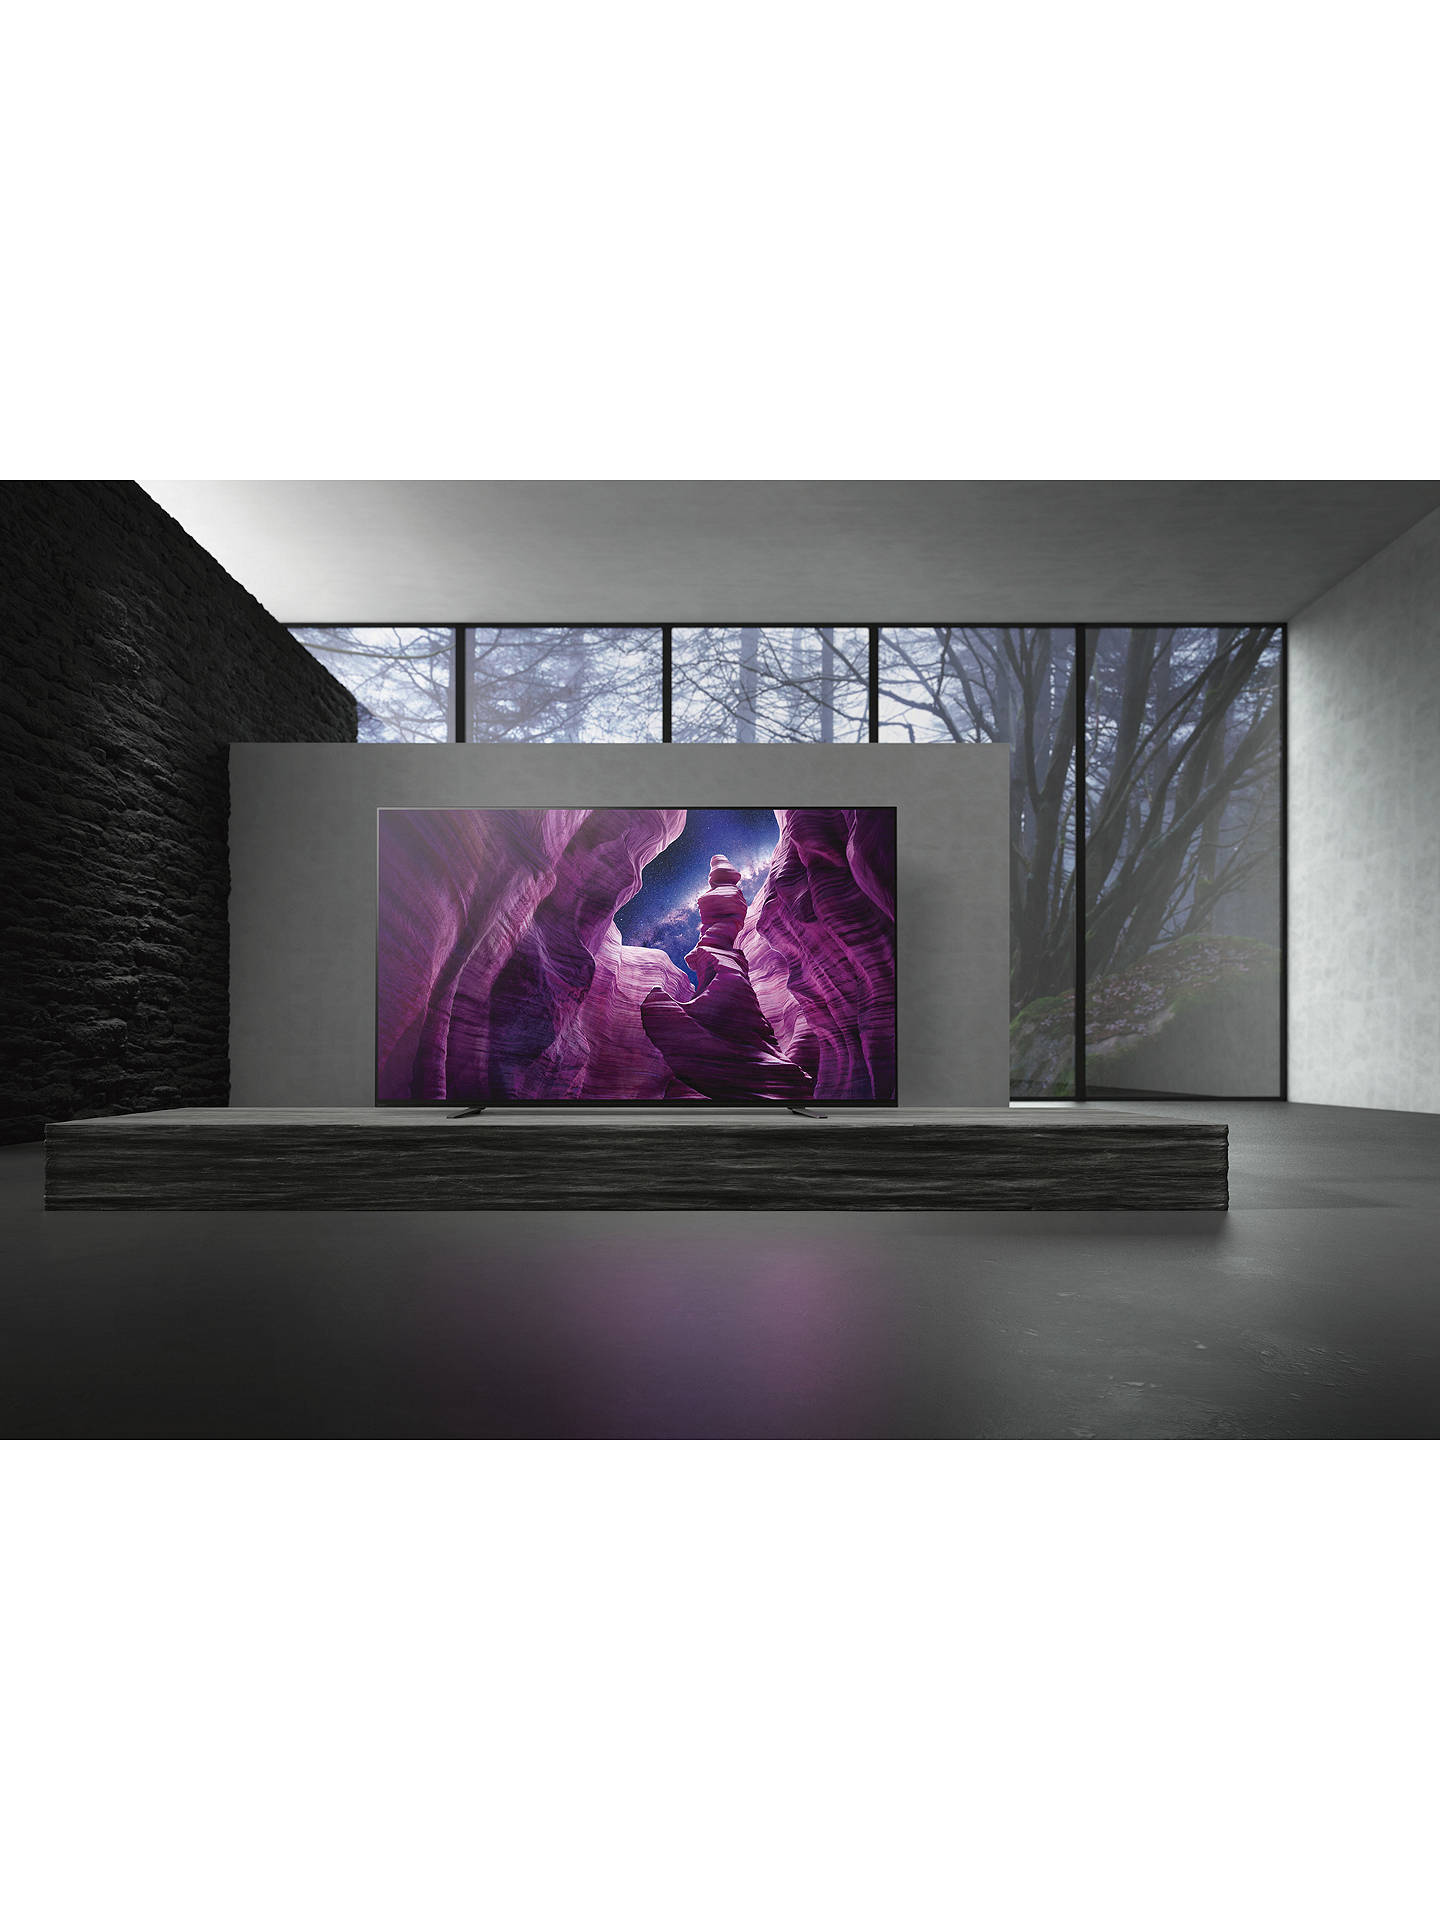 Buy Sony Bravia KD55A8 (2020) OLED HDR 4K Ultra HD Smart Android TV, 55 inch with Freeview HD, Youview, Dolby Atmos & Acoustic Surface Audio, Black Online at johnlewis.com